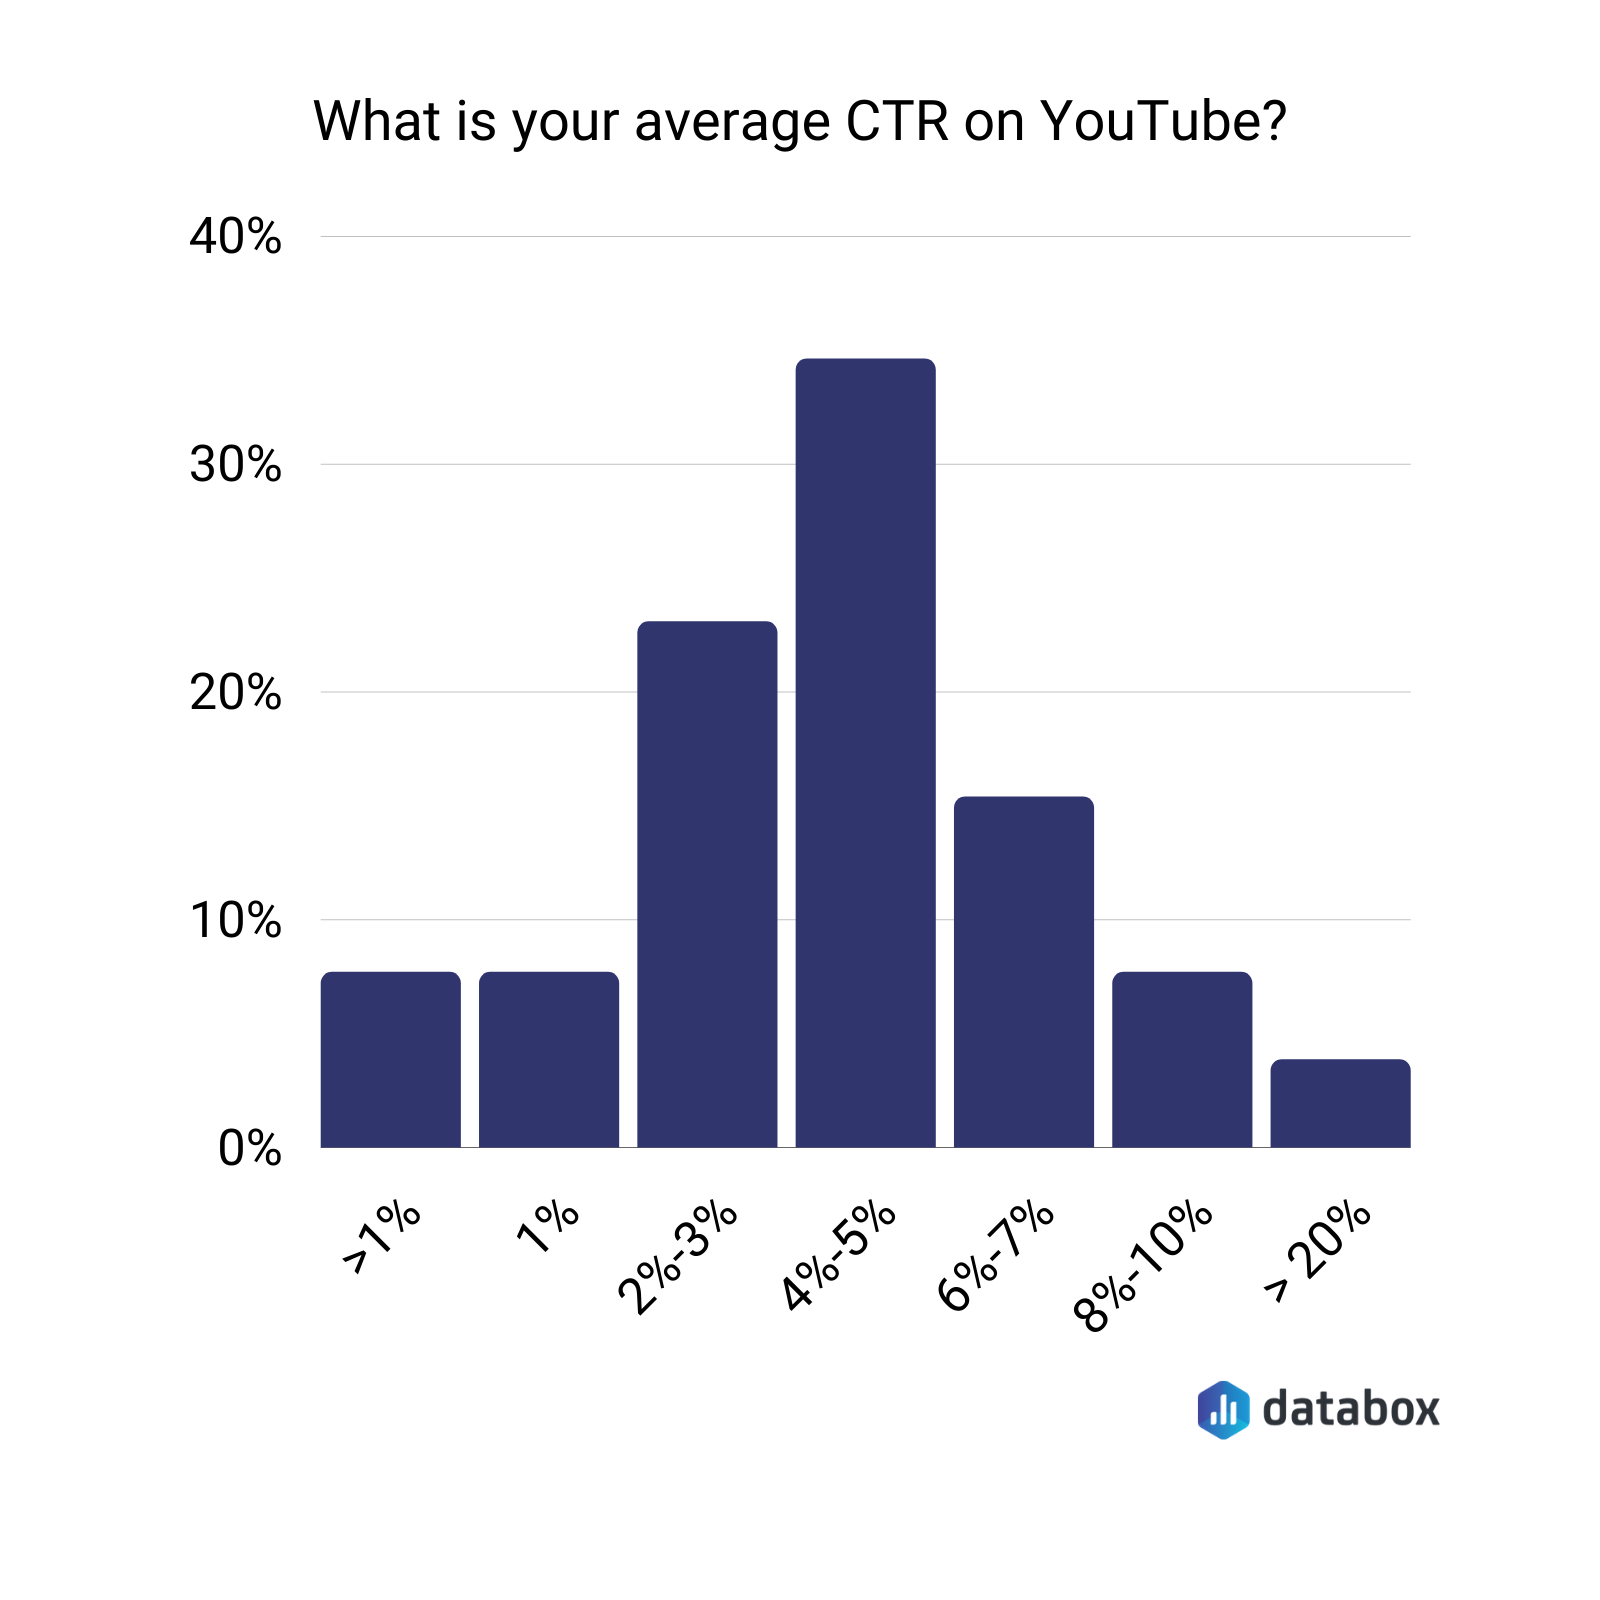 What is the average CTR on Youtube